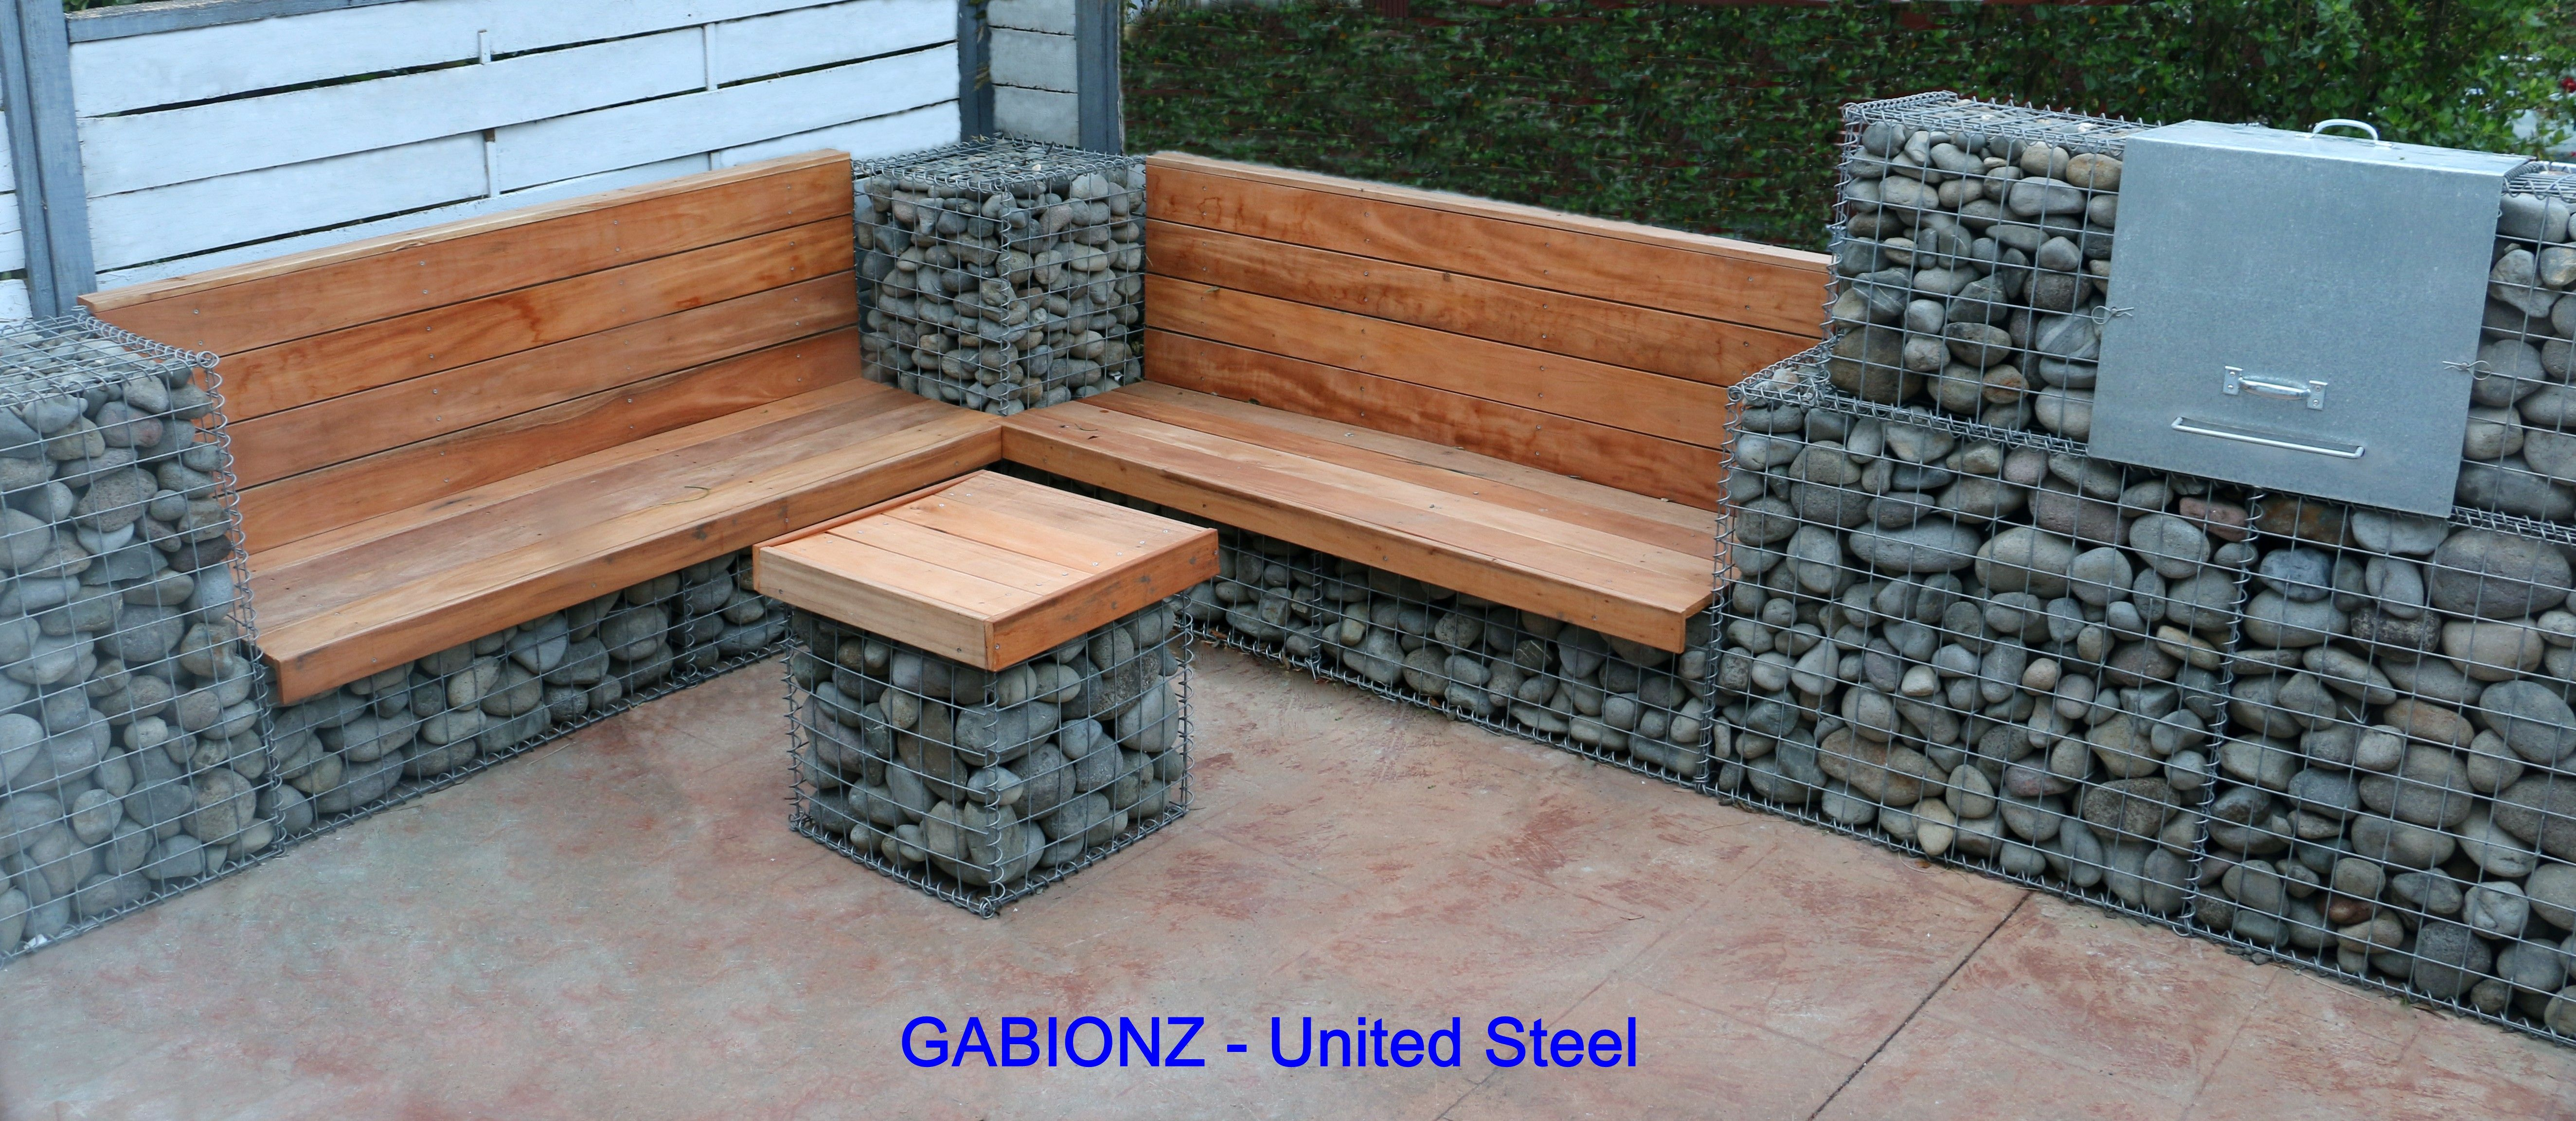 gabion project of garden furniture with table and benches as well as barbeque  used united steel